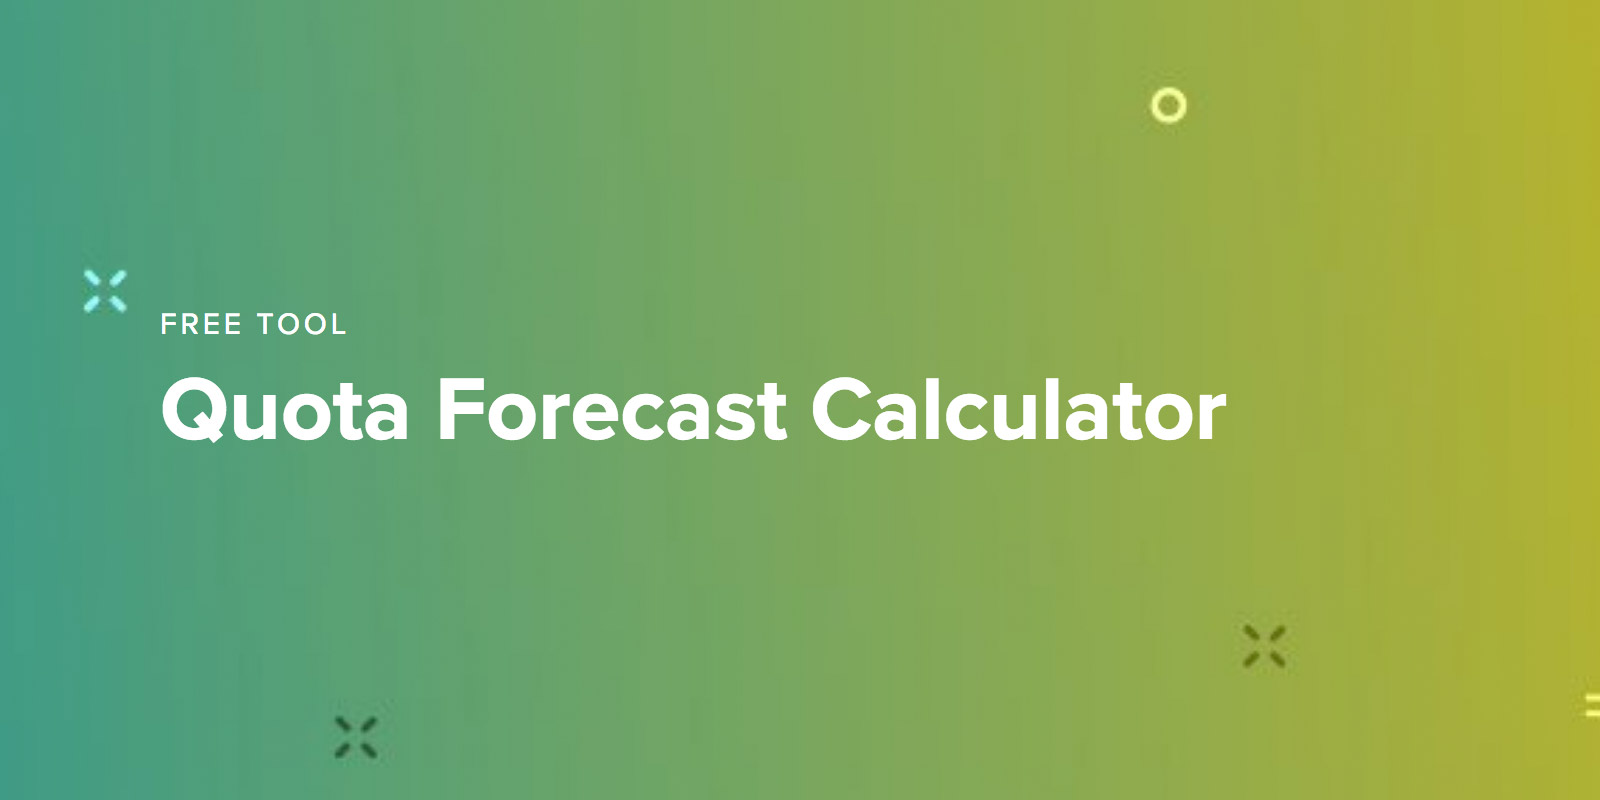 Quota Forecast Calculator